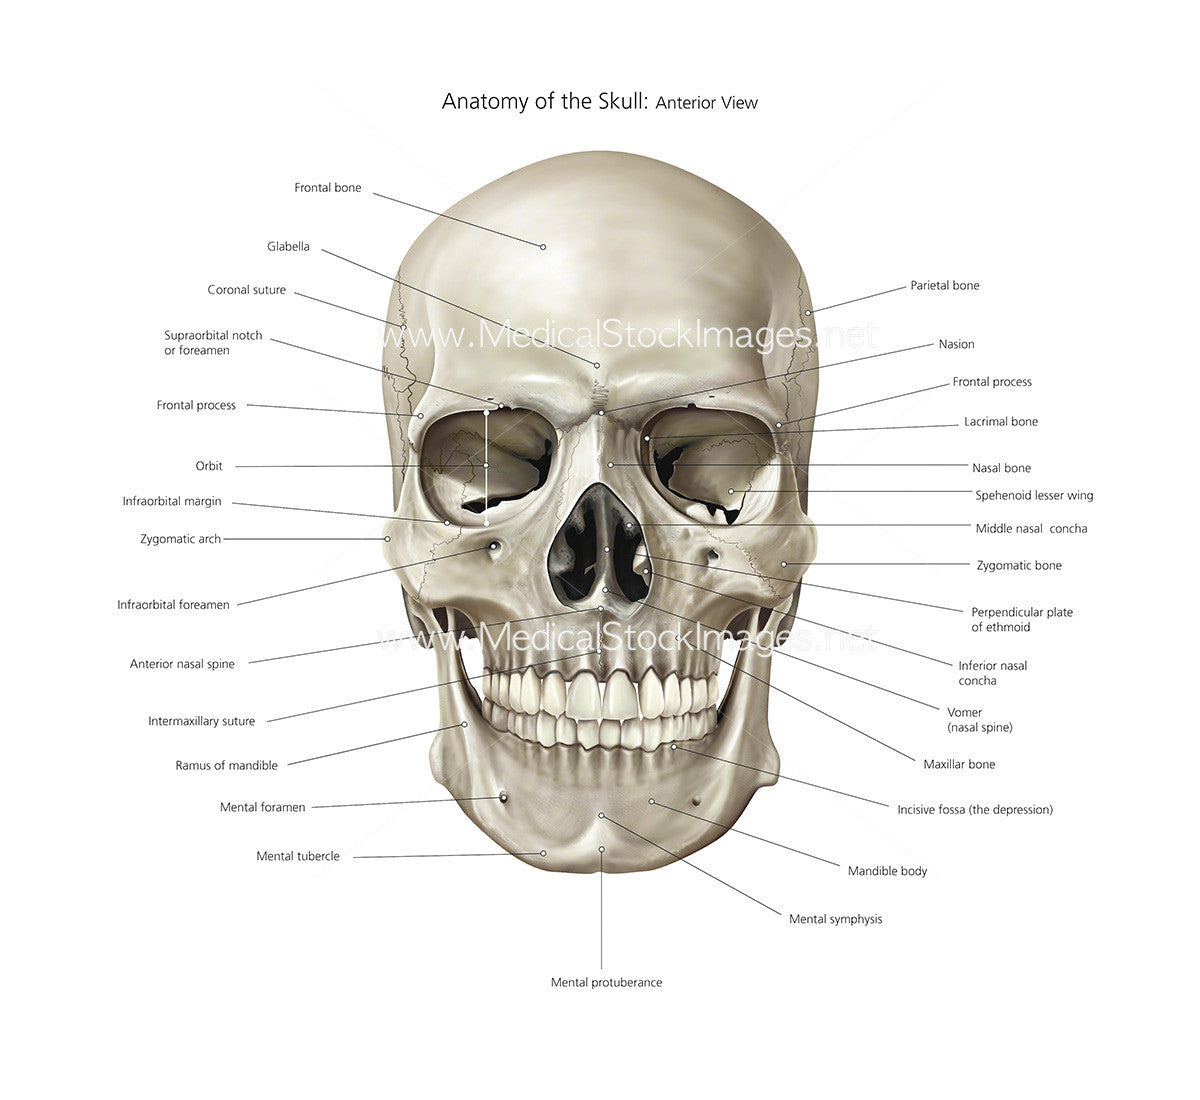 Anatomy of Skull Illustration | Anterior View Labelled – Medical ...